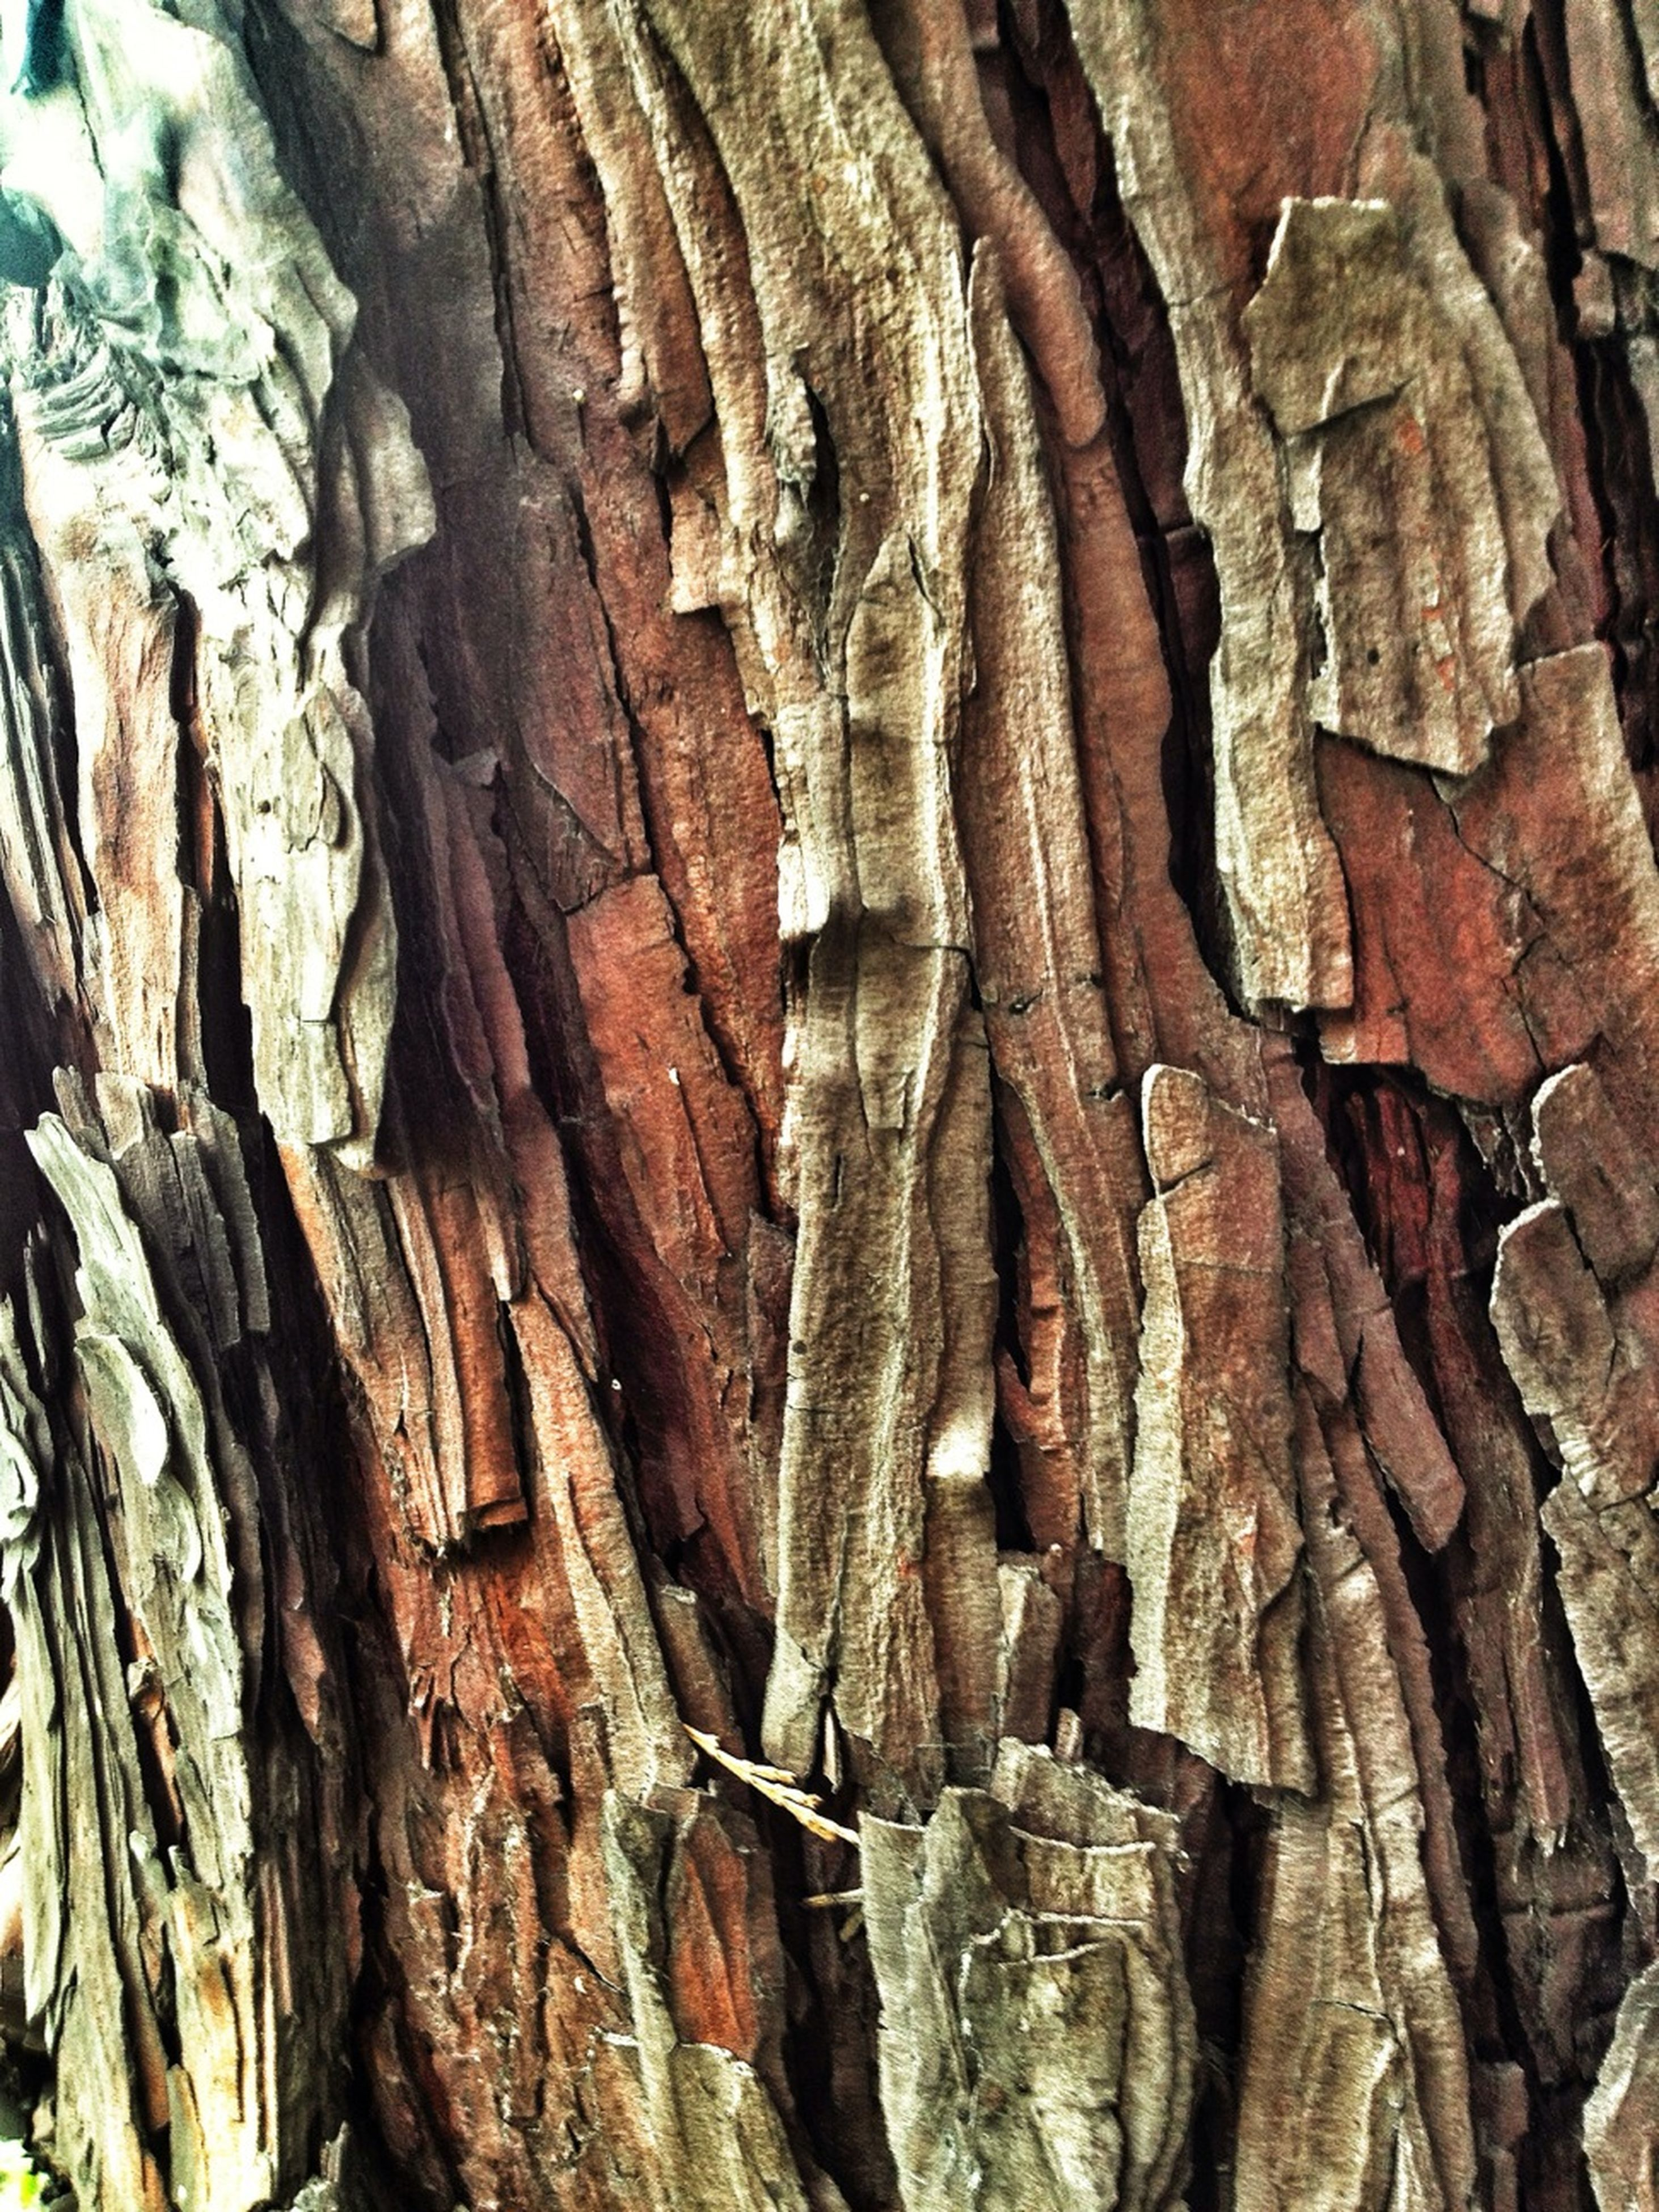 full frame, textured, tree trunk, backgrounds, tree, close-up, wood - material, growth, pattern, rough, nature, natural pattern, bark, outdoors, day, no people, abundance, detail, low angle view, root